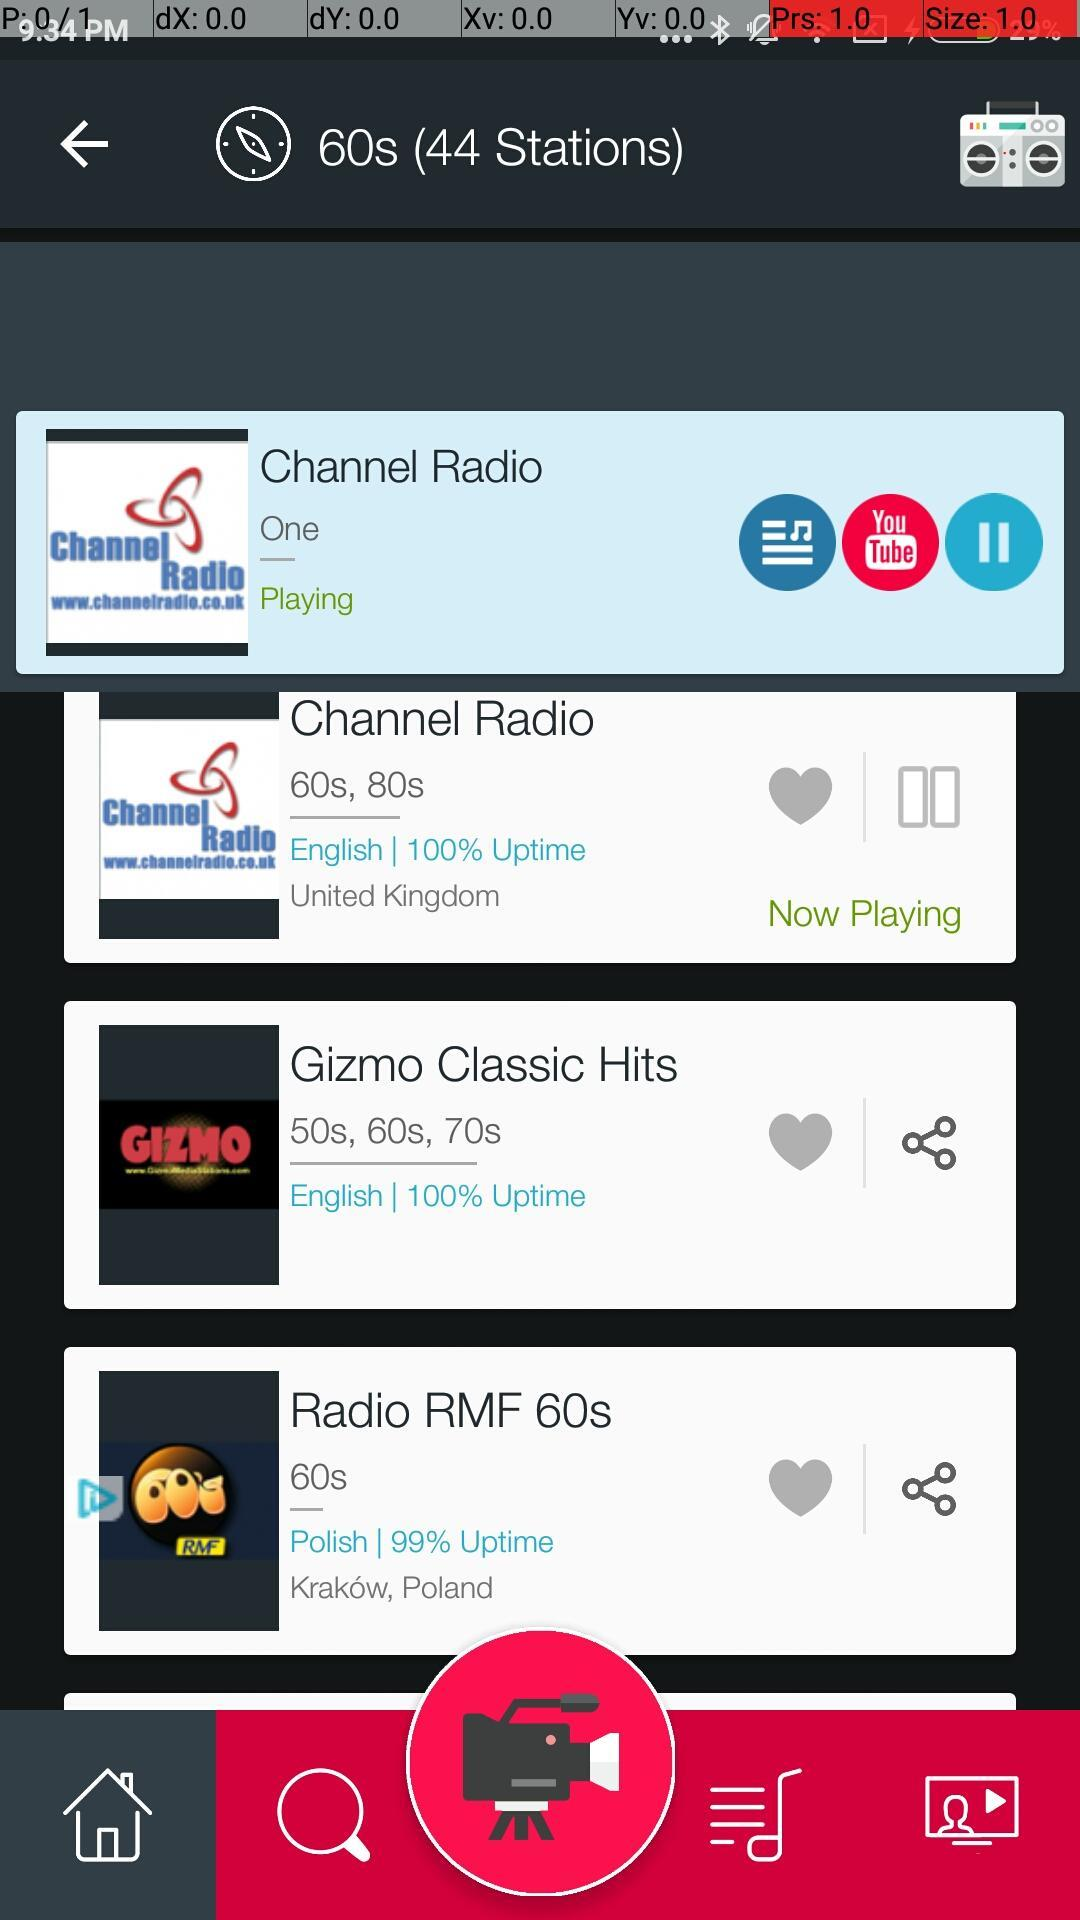 60s Music Videos & 60s Music Radio Stations for Android